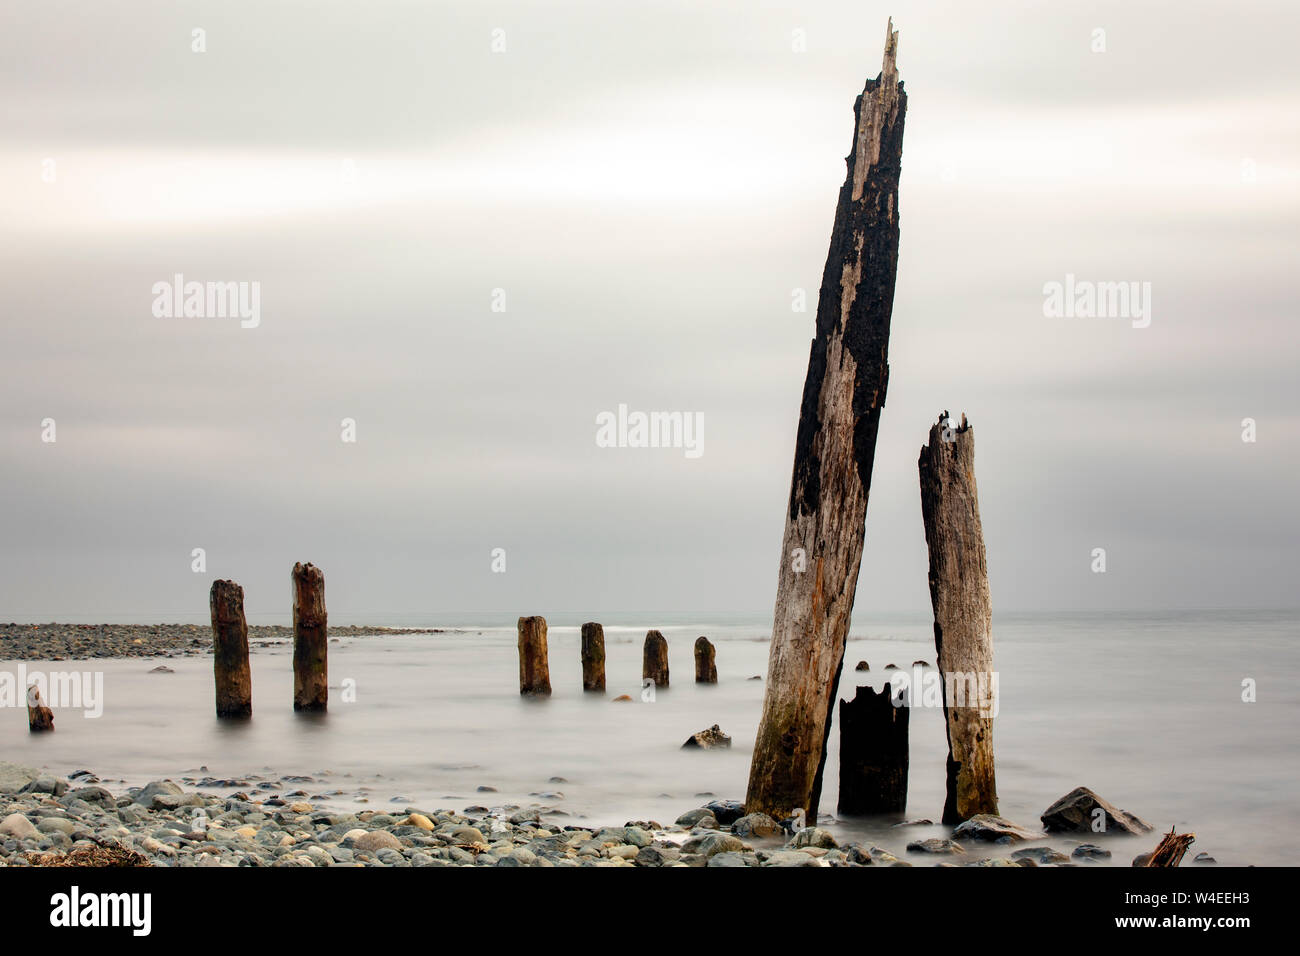 Pilings Stock Photos & Pilings Stock Images - Alamy